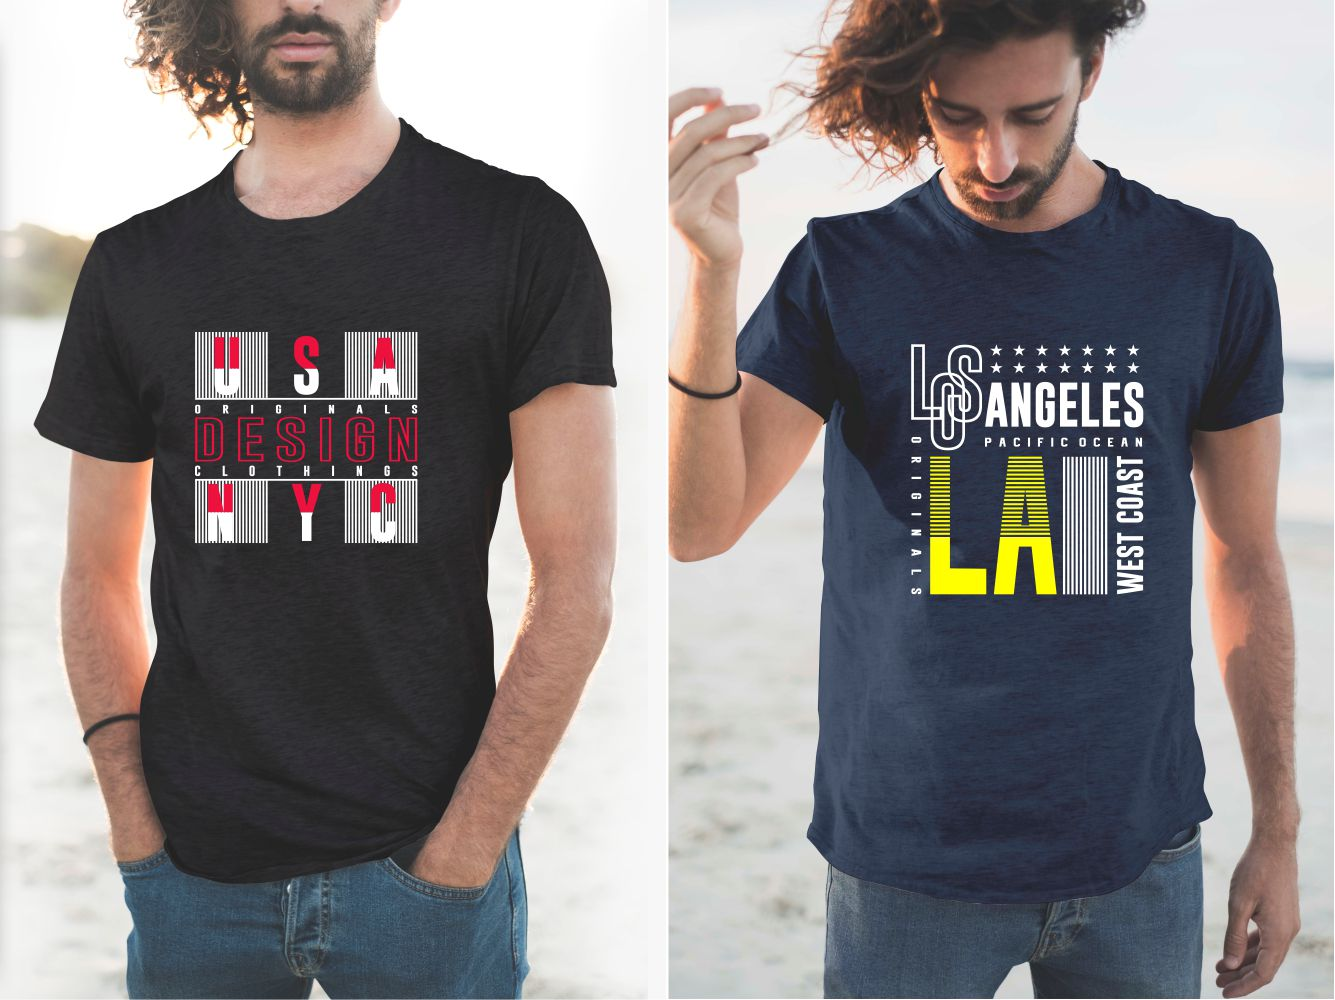 Blue and black T-shirts with US patriotic elements.